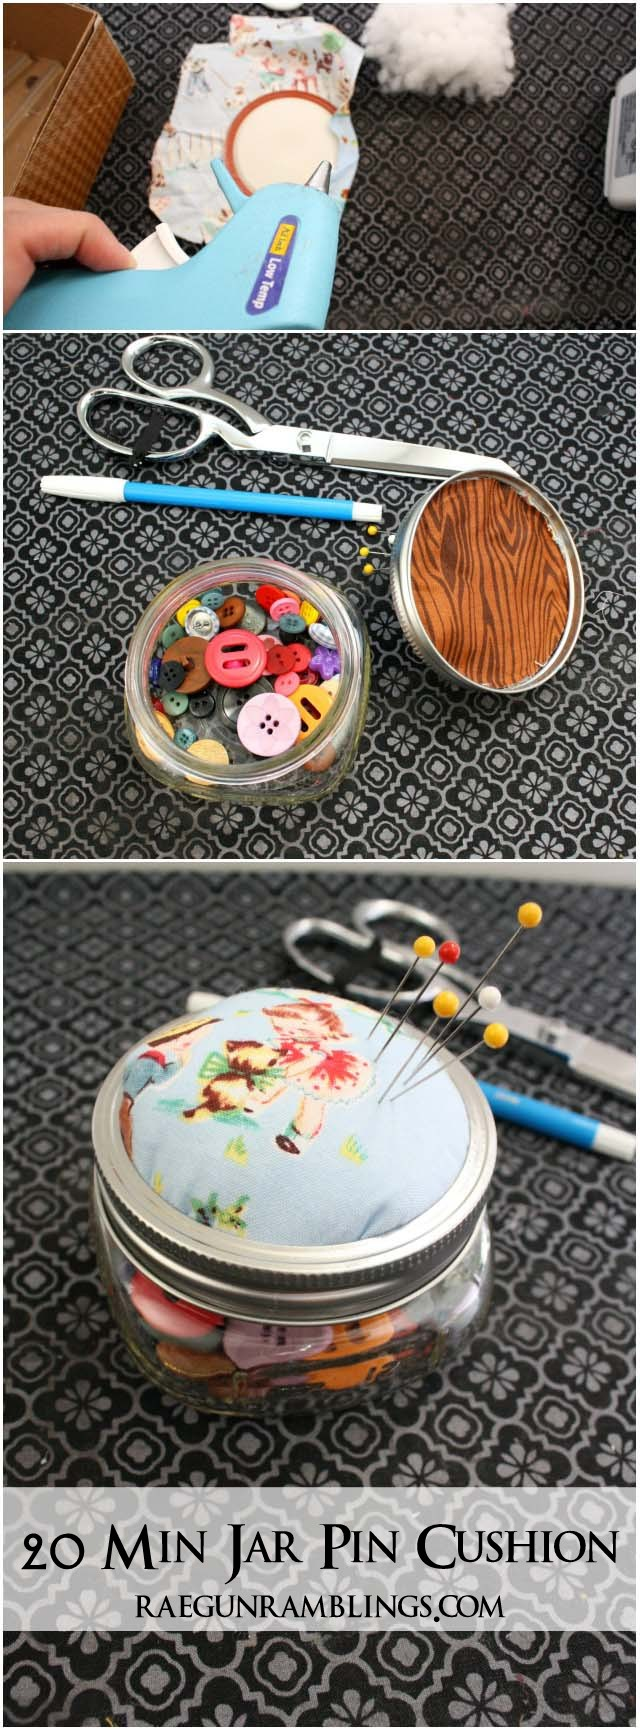 Fun quick project for scraps. Upcycle a mason jar into a pin cushion - Rae GUn Ramblings